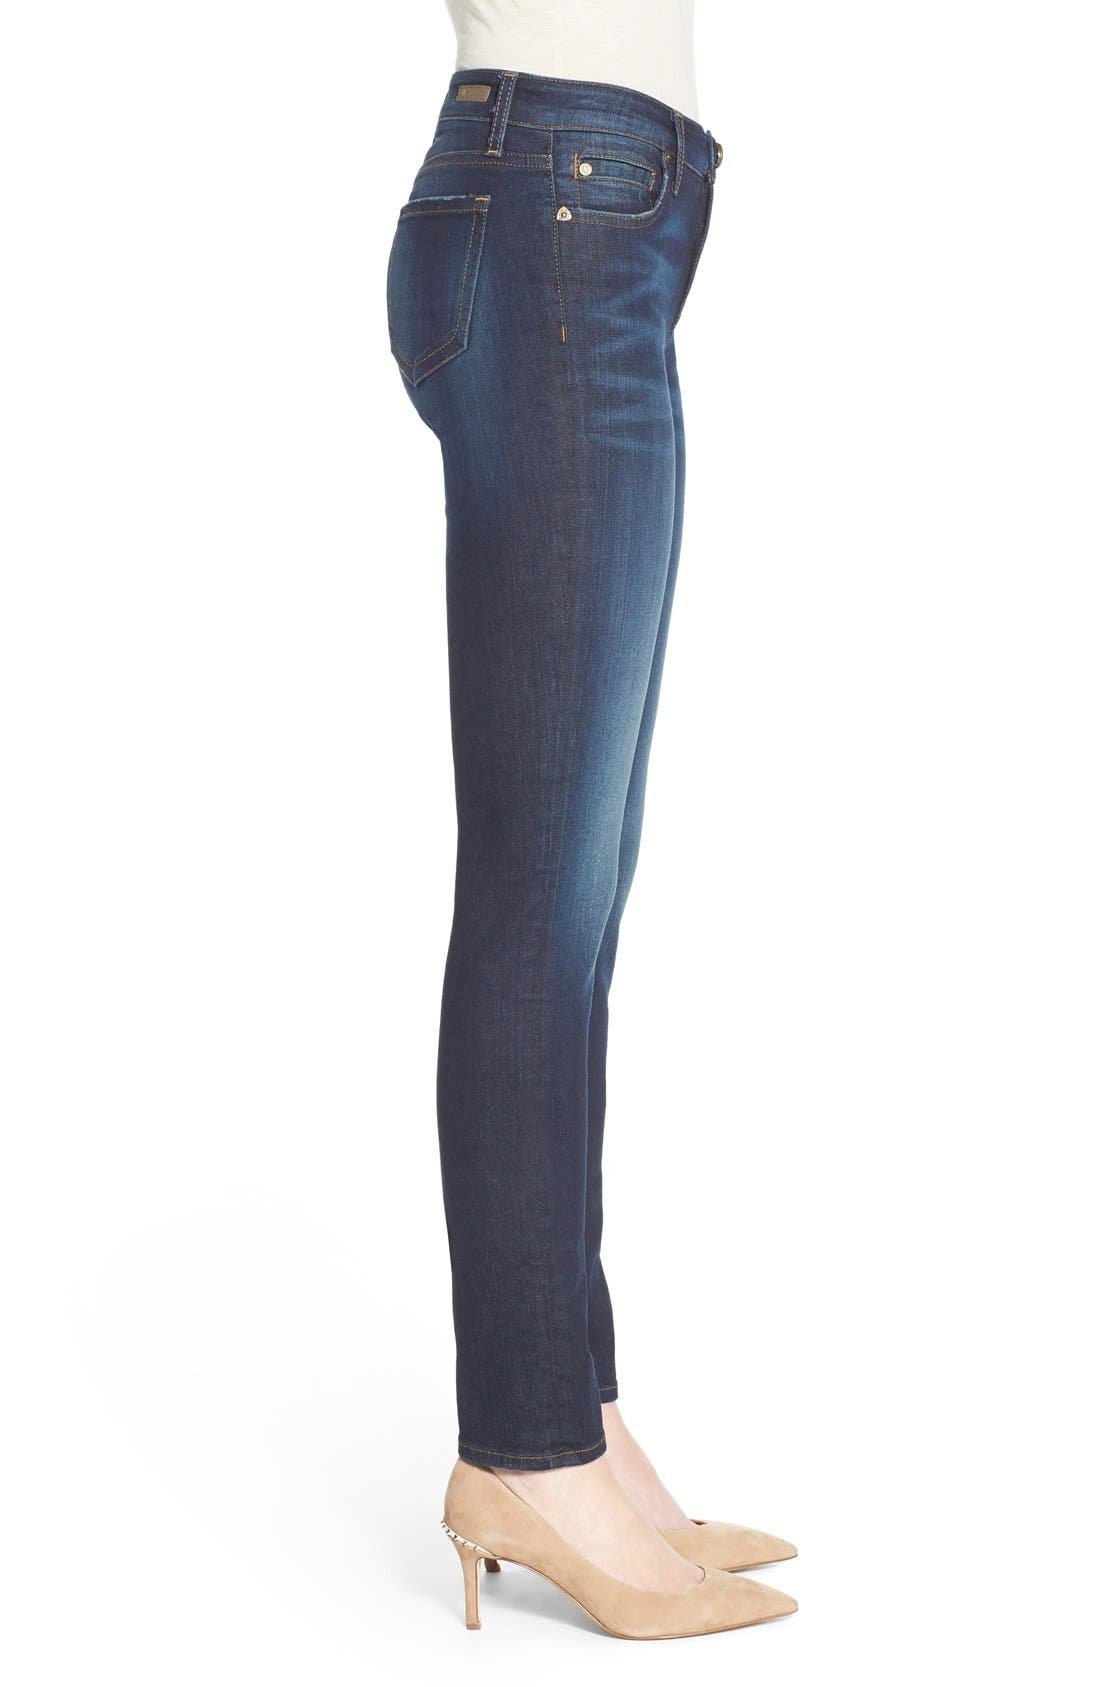 'Diana' Stretch Skinny Jeans,                             Alternate thumbnail 4, color,                             Blinding